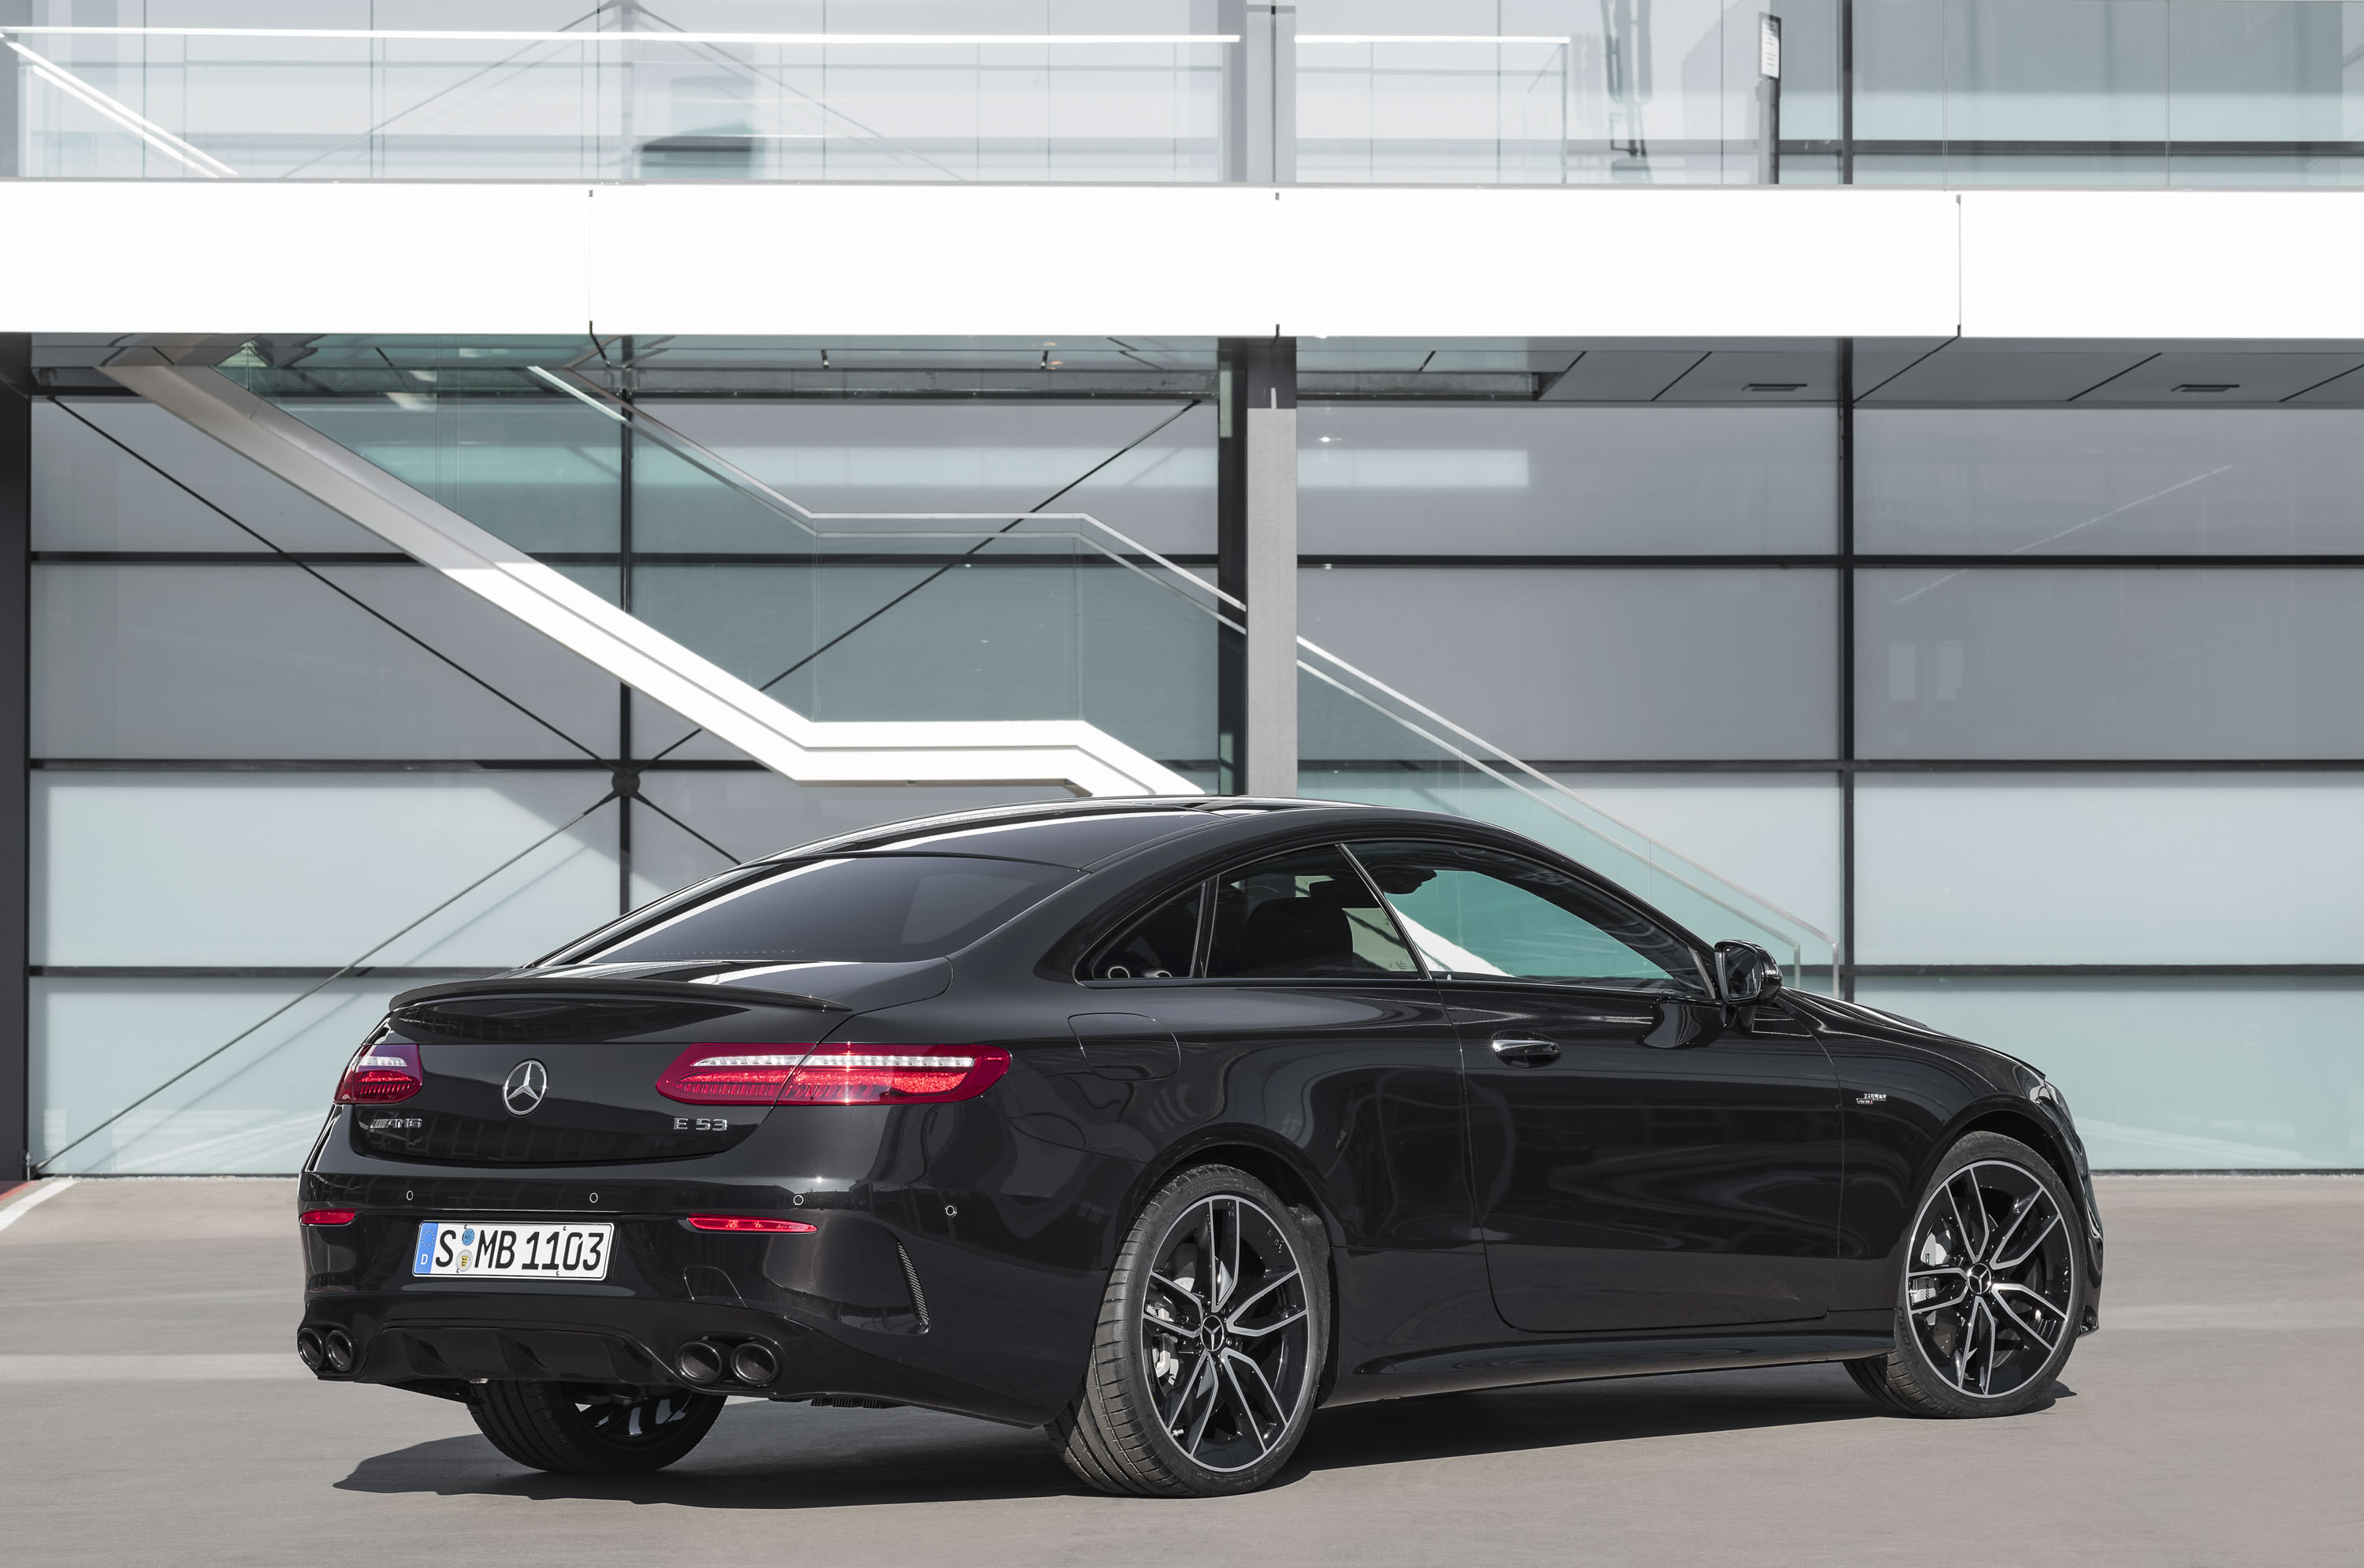 https://pictures.topspeed.com/IMG/jpg/201801/mercedes-amg-e53-cou-64.jpg